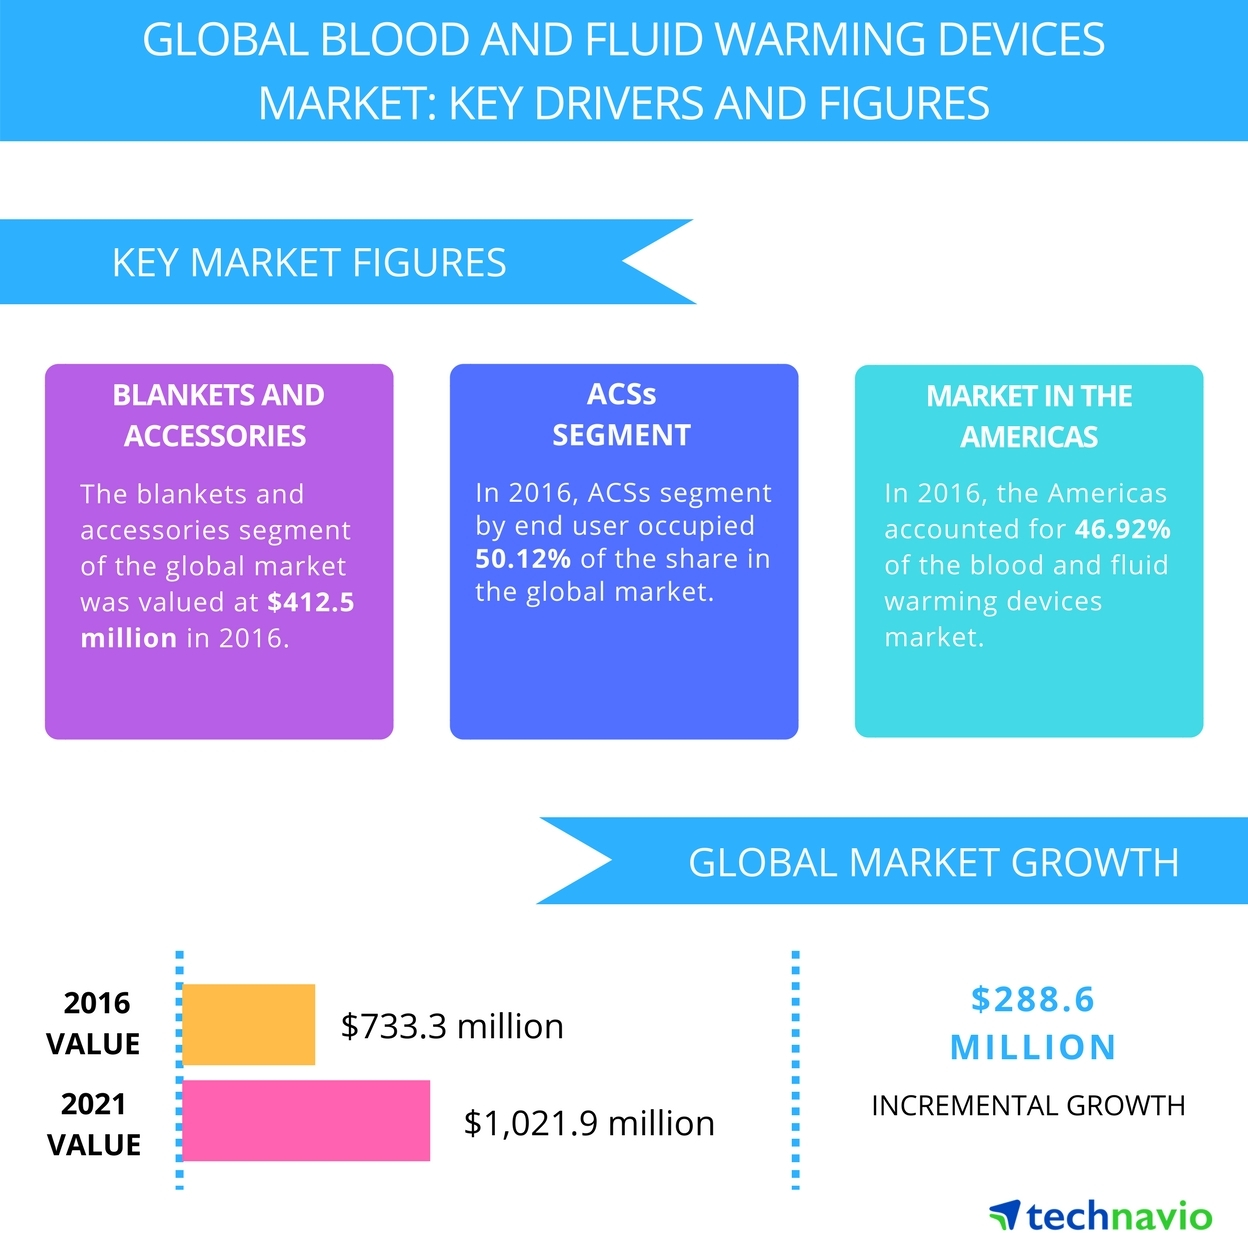 Technavio has published a new report on the global blood and fluid warming devices market from 2017-2021. (Graphic: Business Wire)